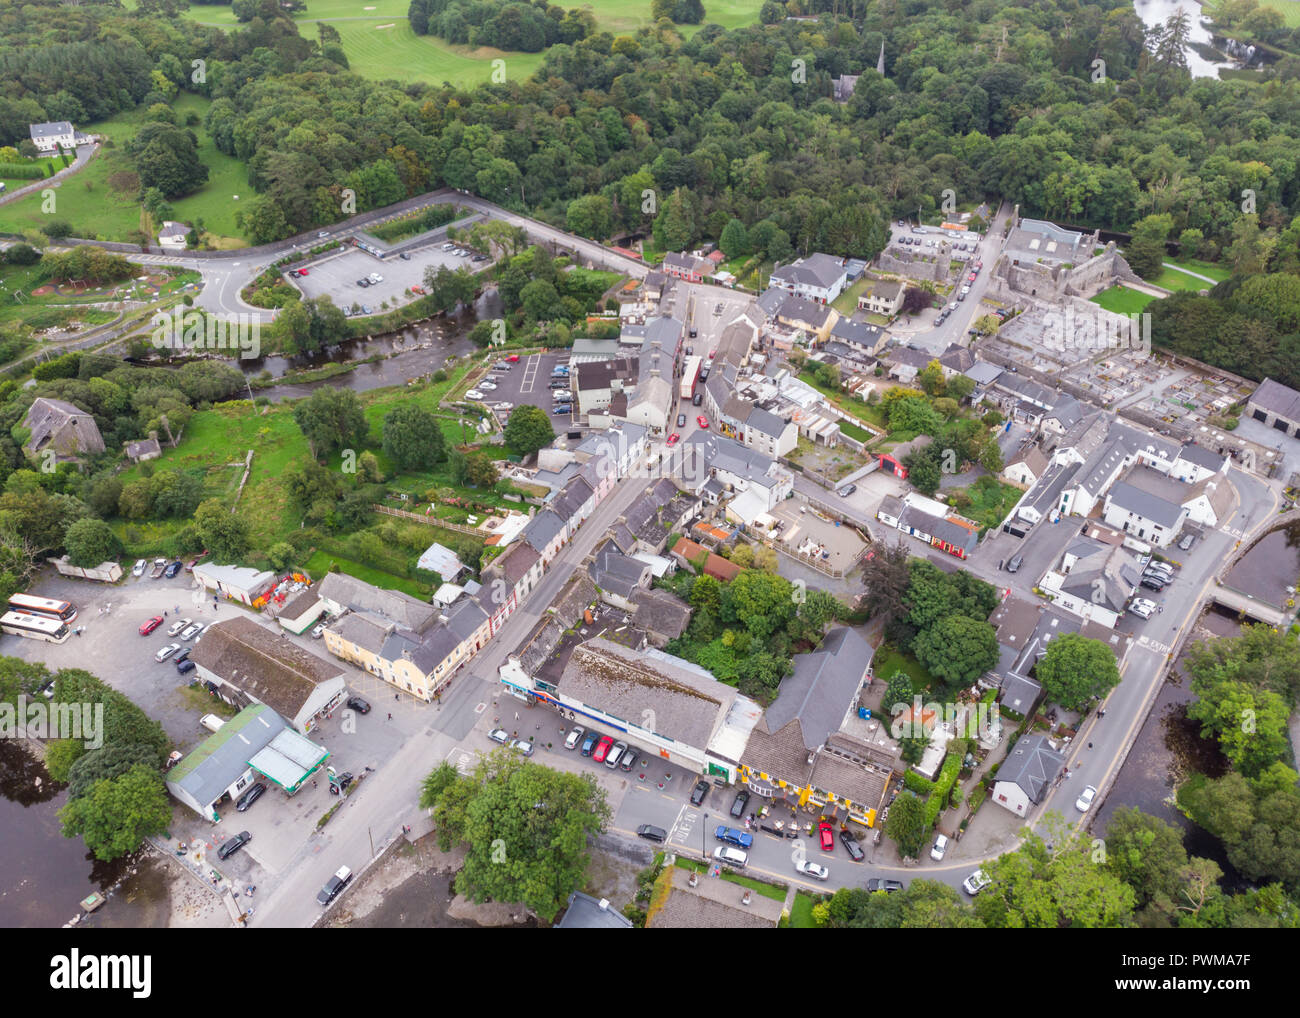 An aerial view of  the village of Cong, straddling the County Galway and County Mayo borders in Ireland. Stock Photo